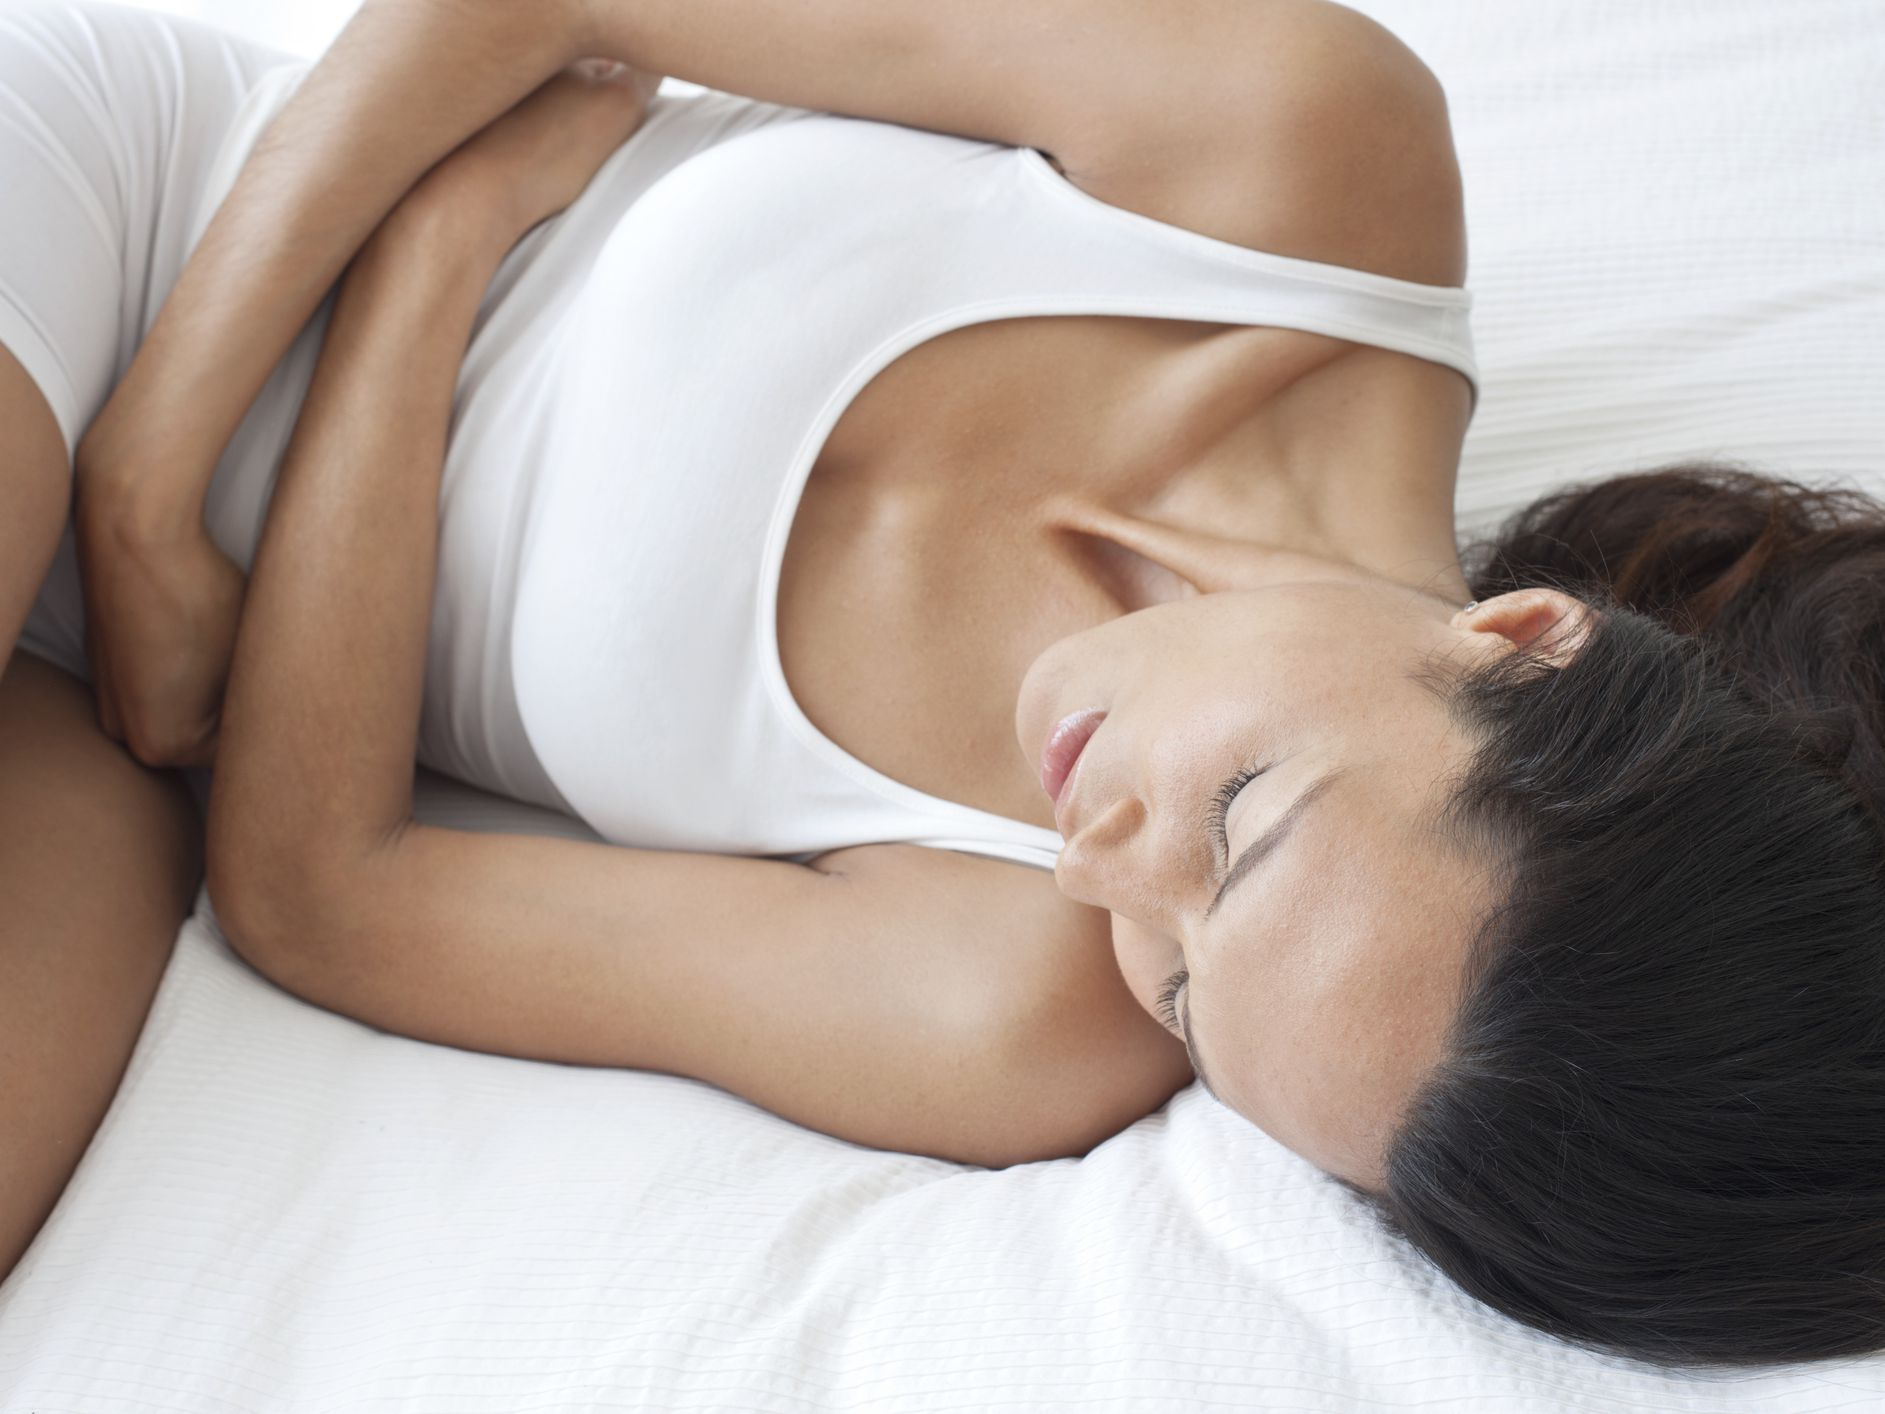 Do You Have Mittelschmerz Pain Between Your Periods?